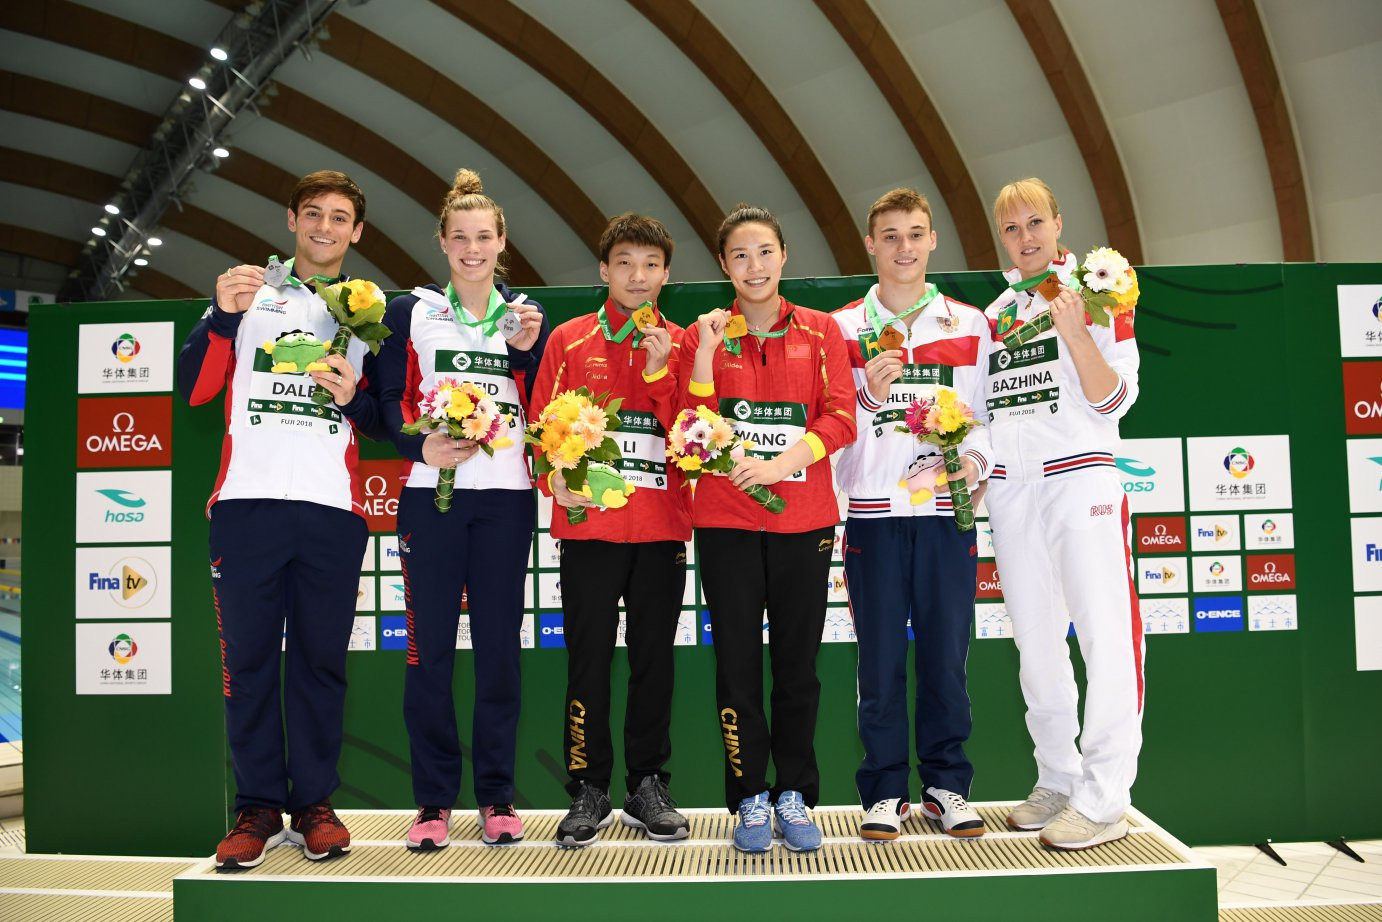 The medallists line up from the final event in the FINA Diving World Series at Fuji - the mixed 3m springboard ©FINA